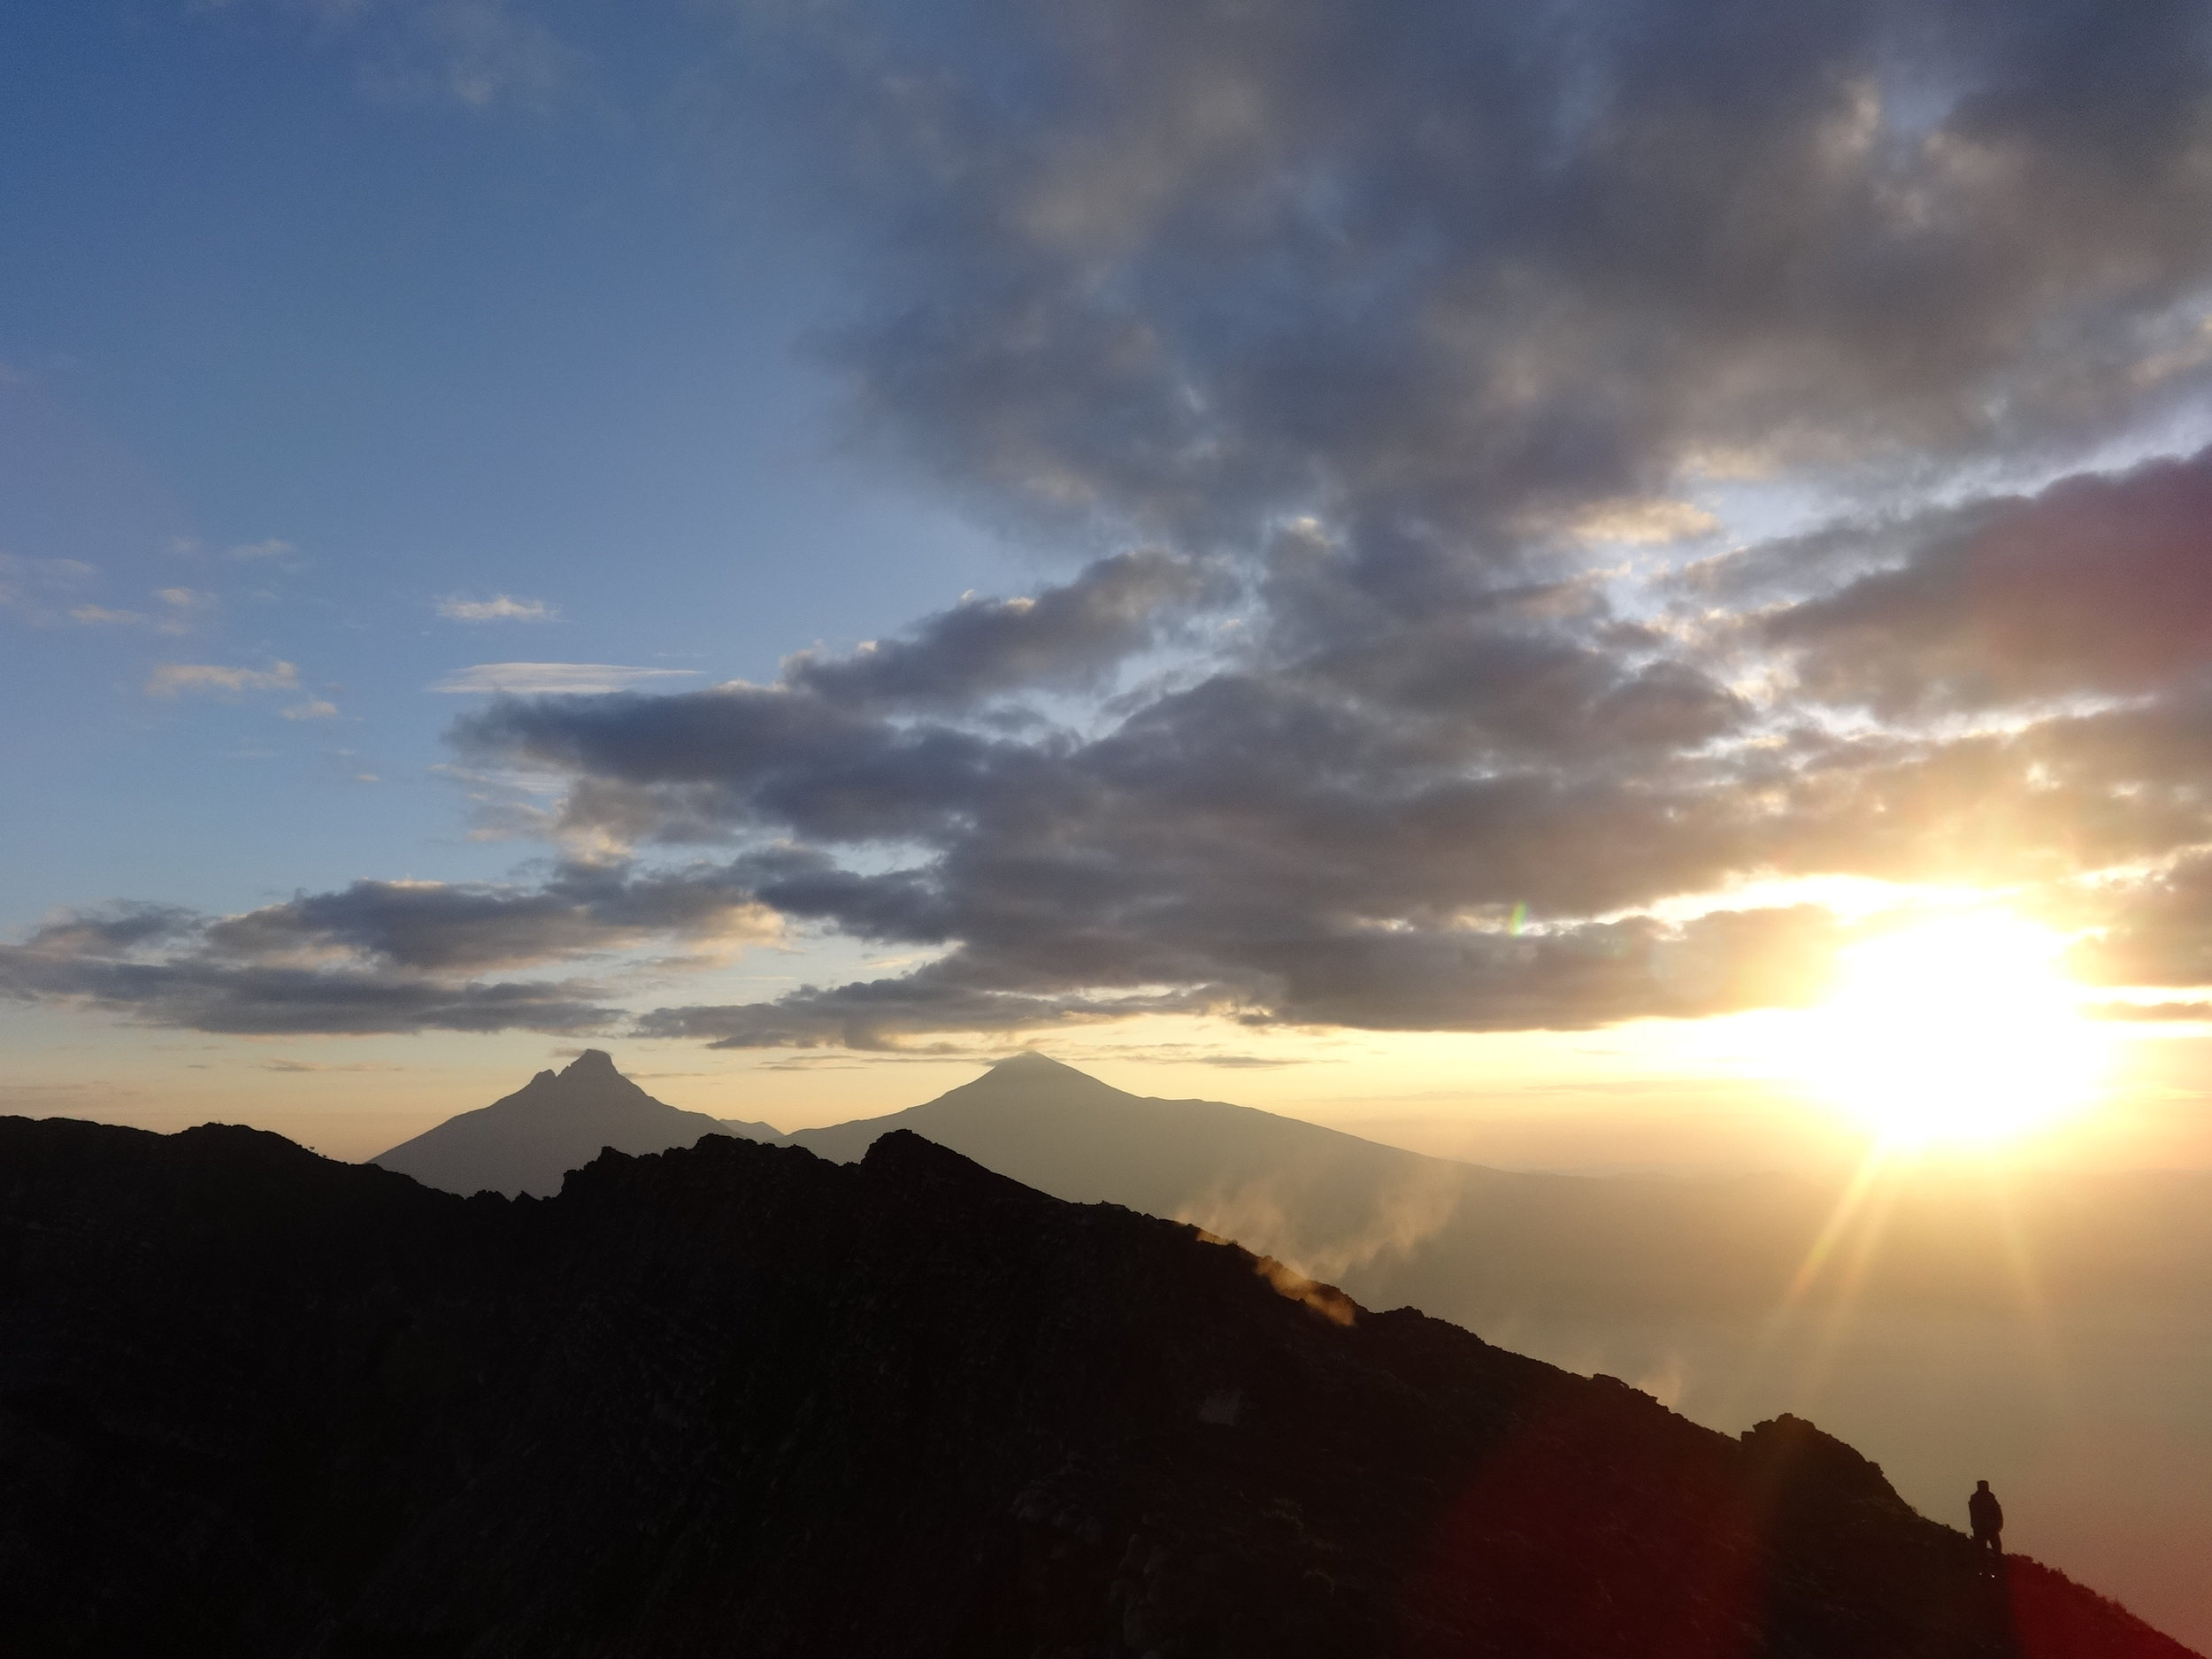 The morning gift of asunrise was the best way to windup the volcano trek